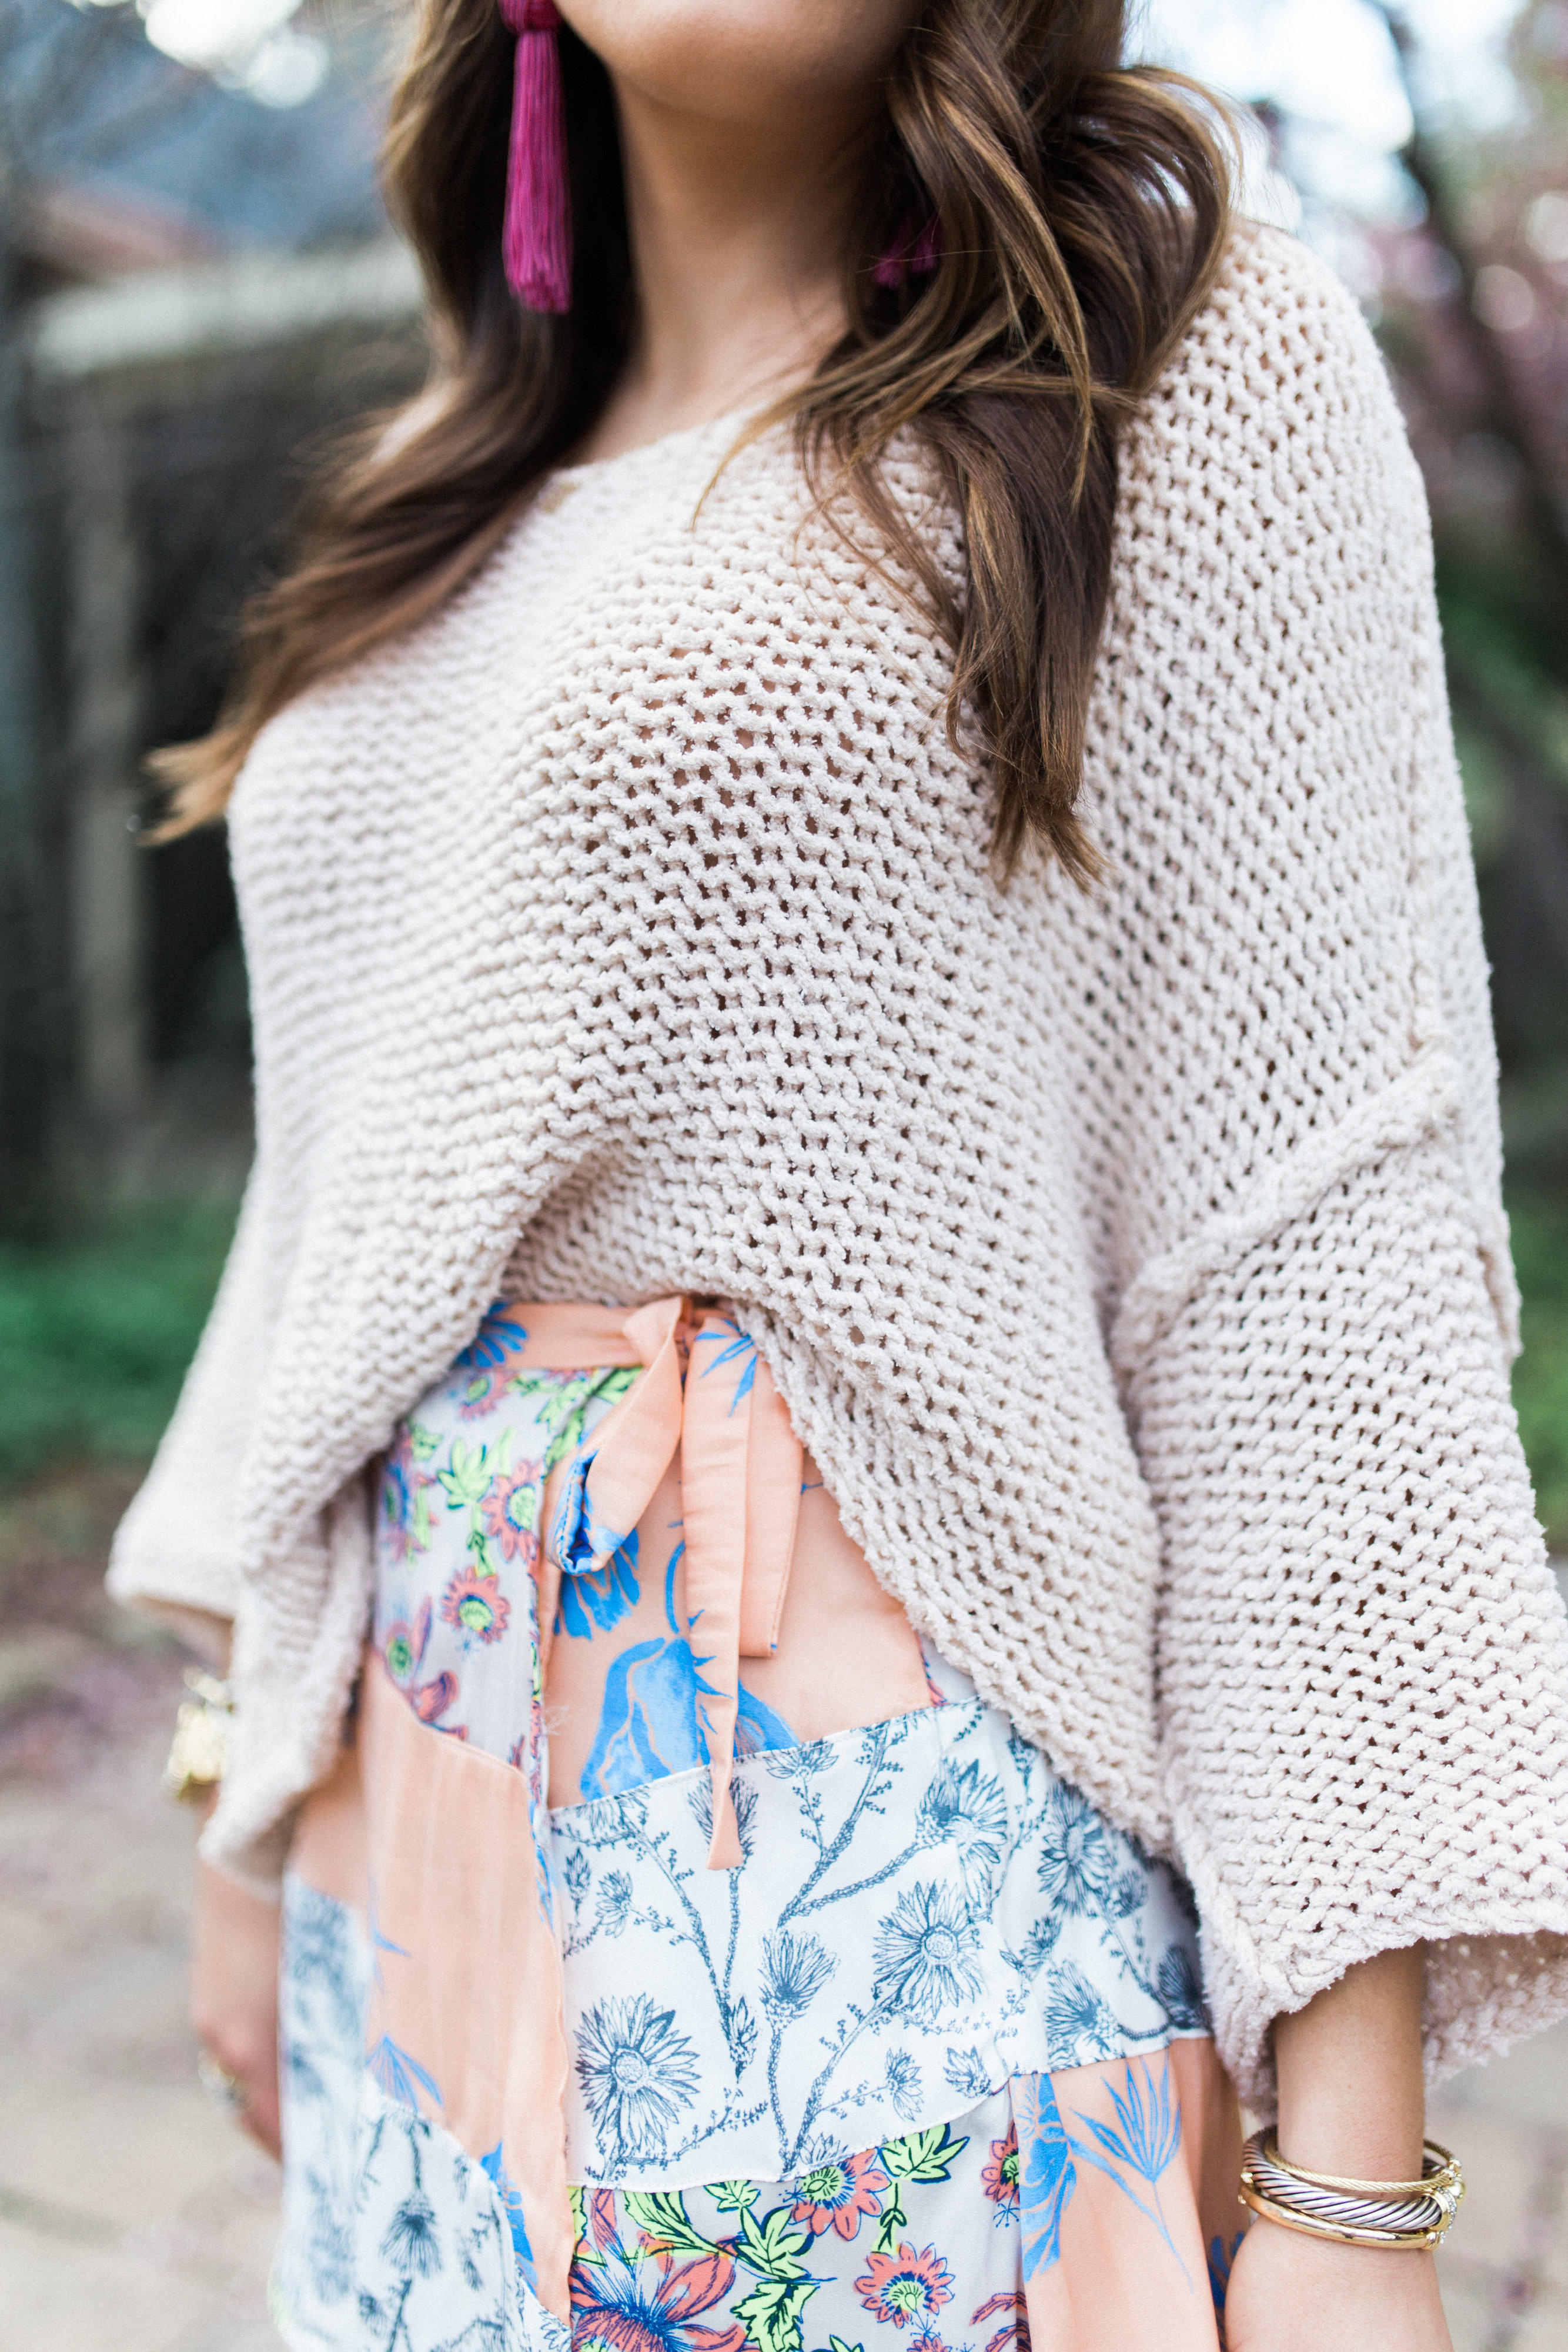 Free People Skort / What to buy from free people